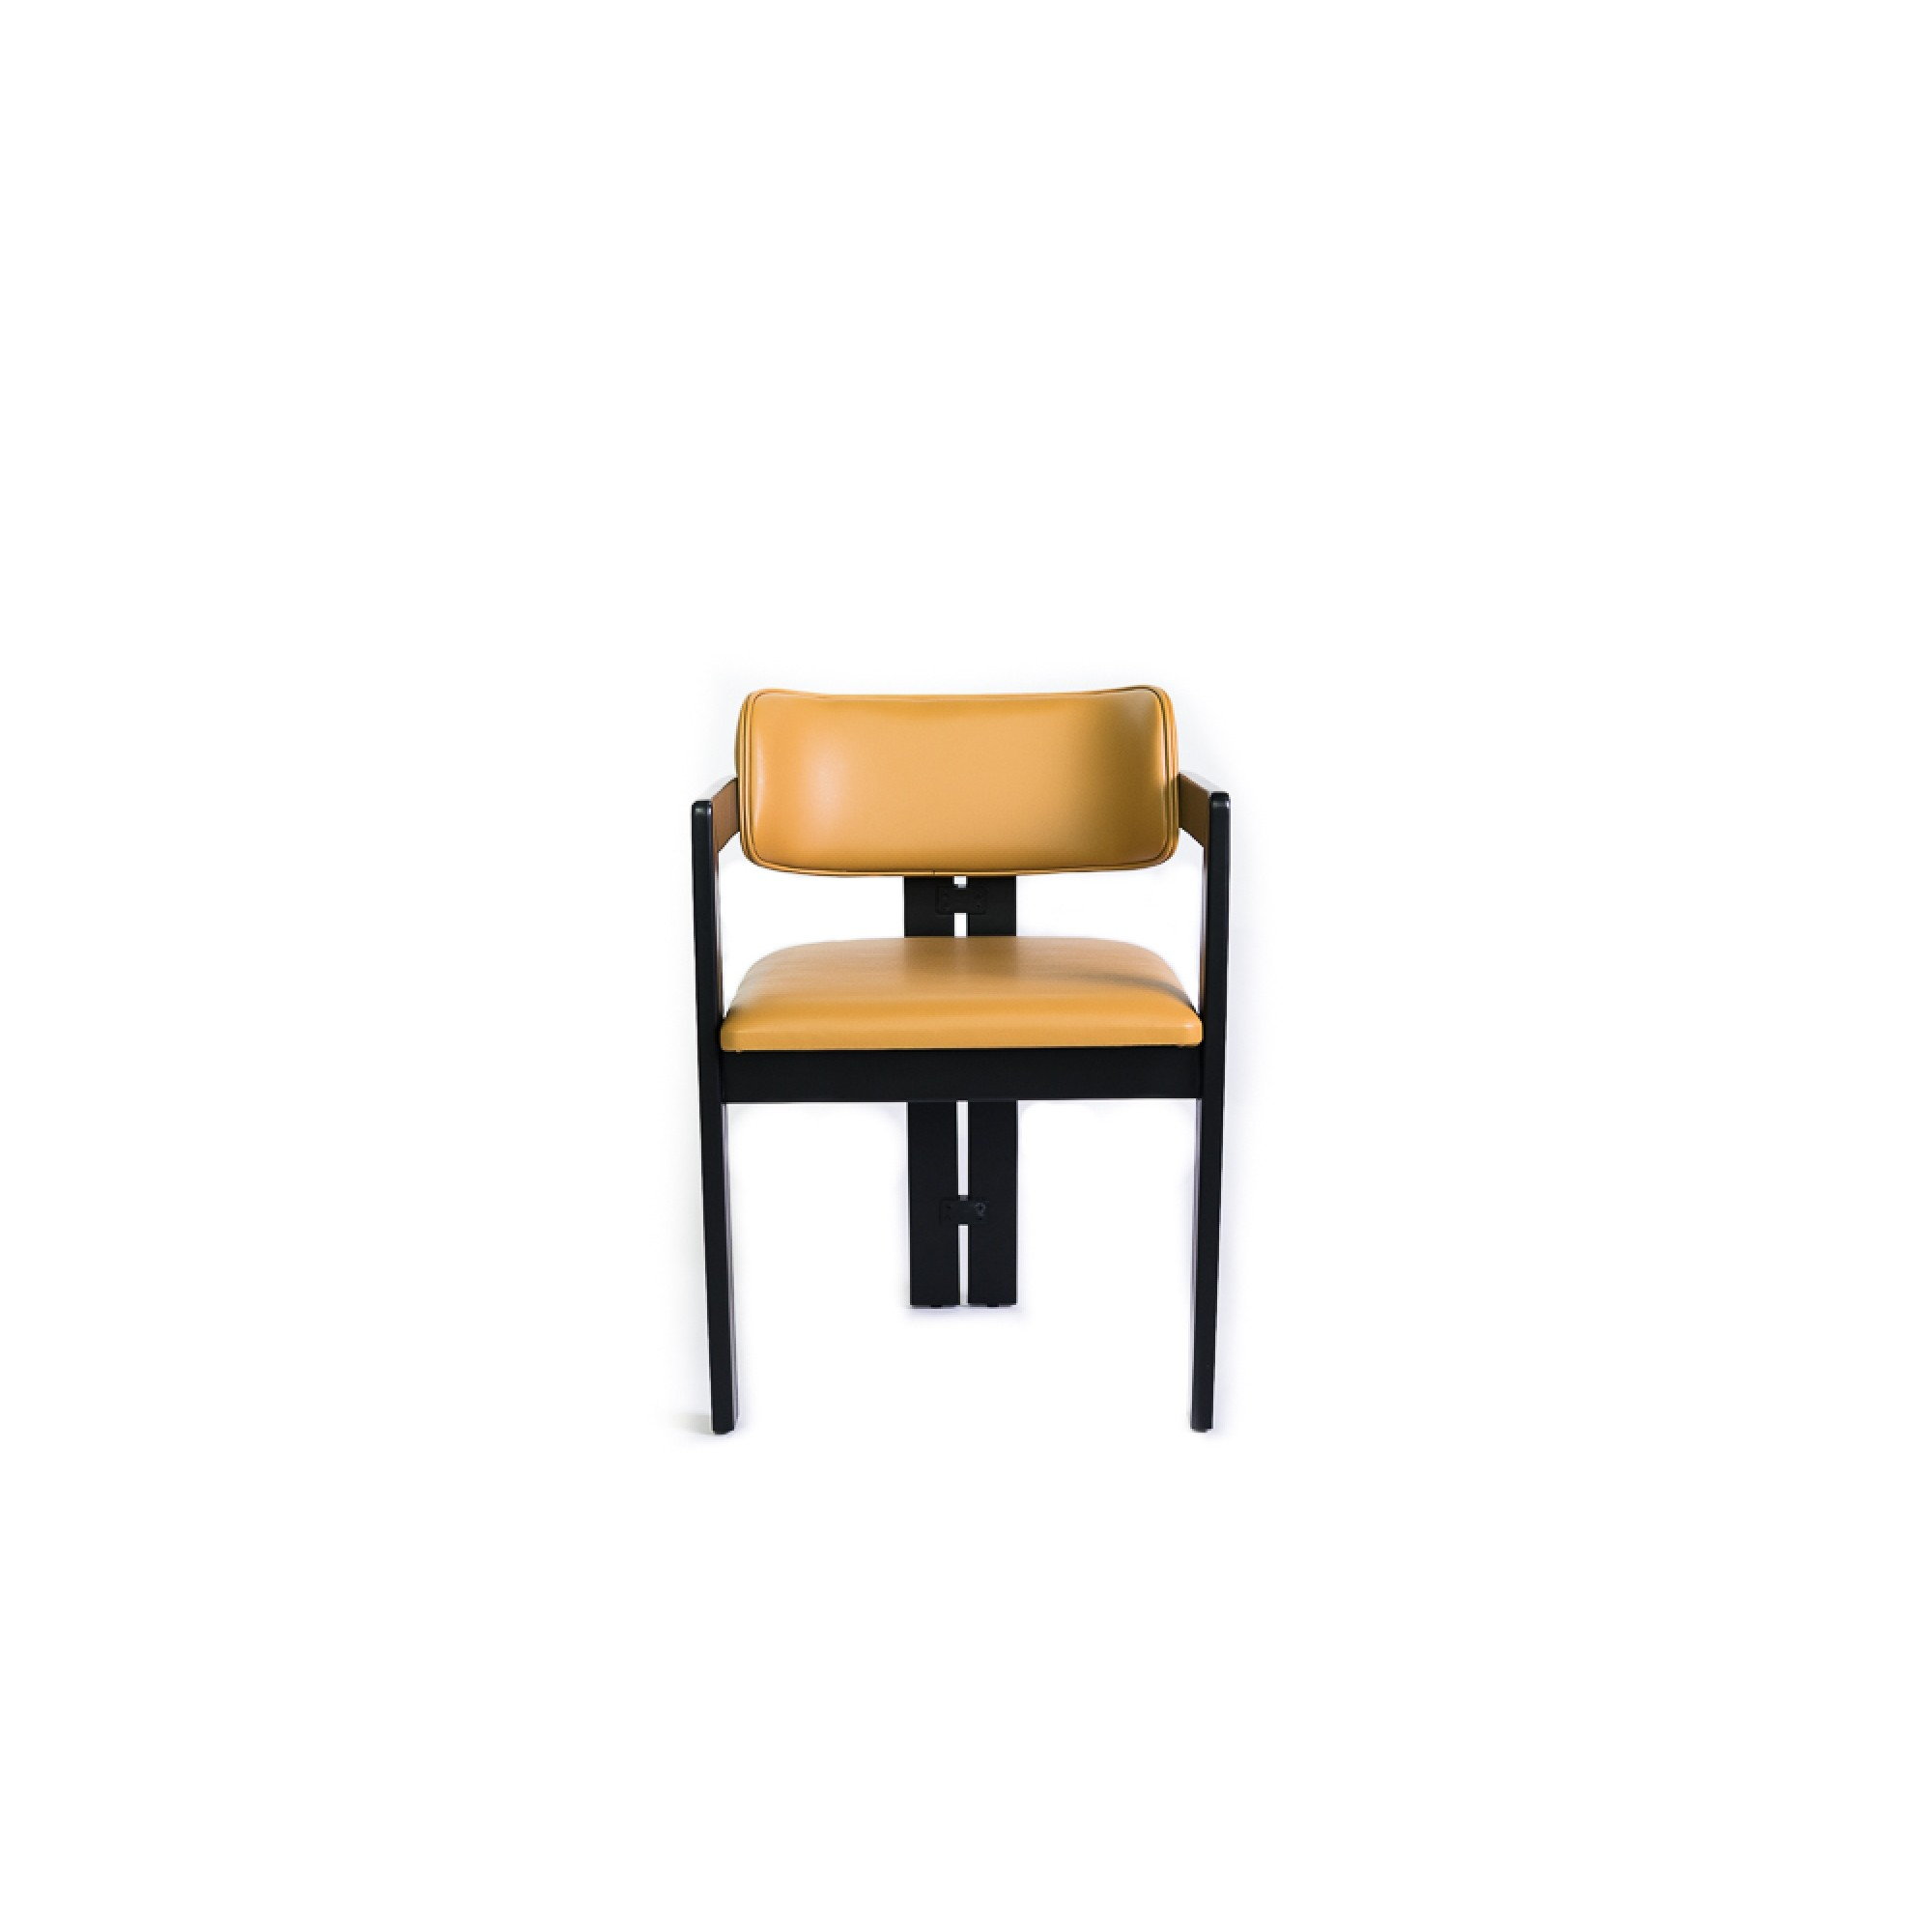 Chair with wooden legs and handles, upholstered in eco-leather, mustard yellow - MARY